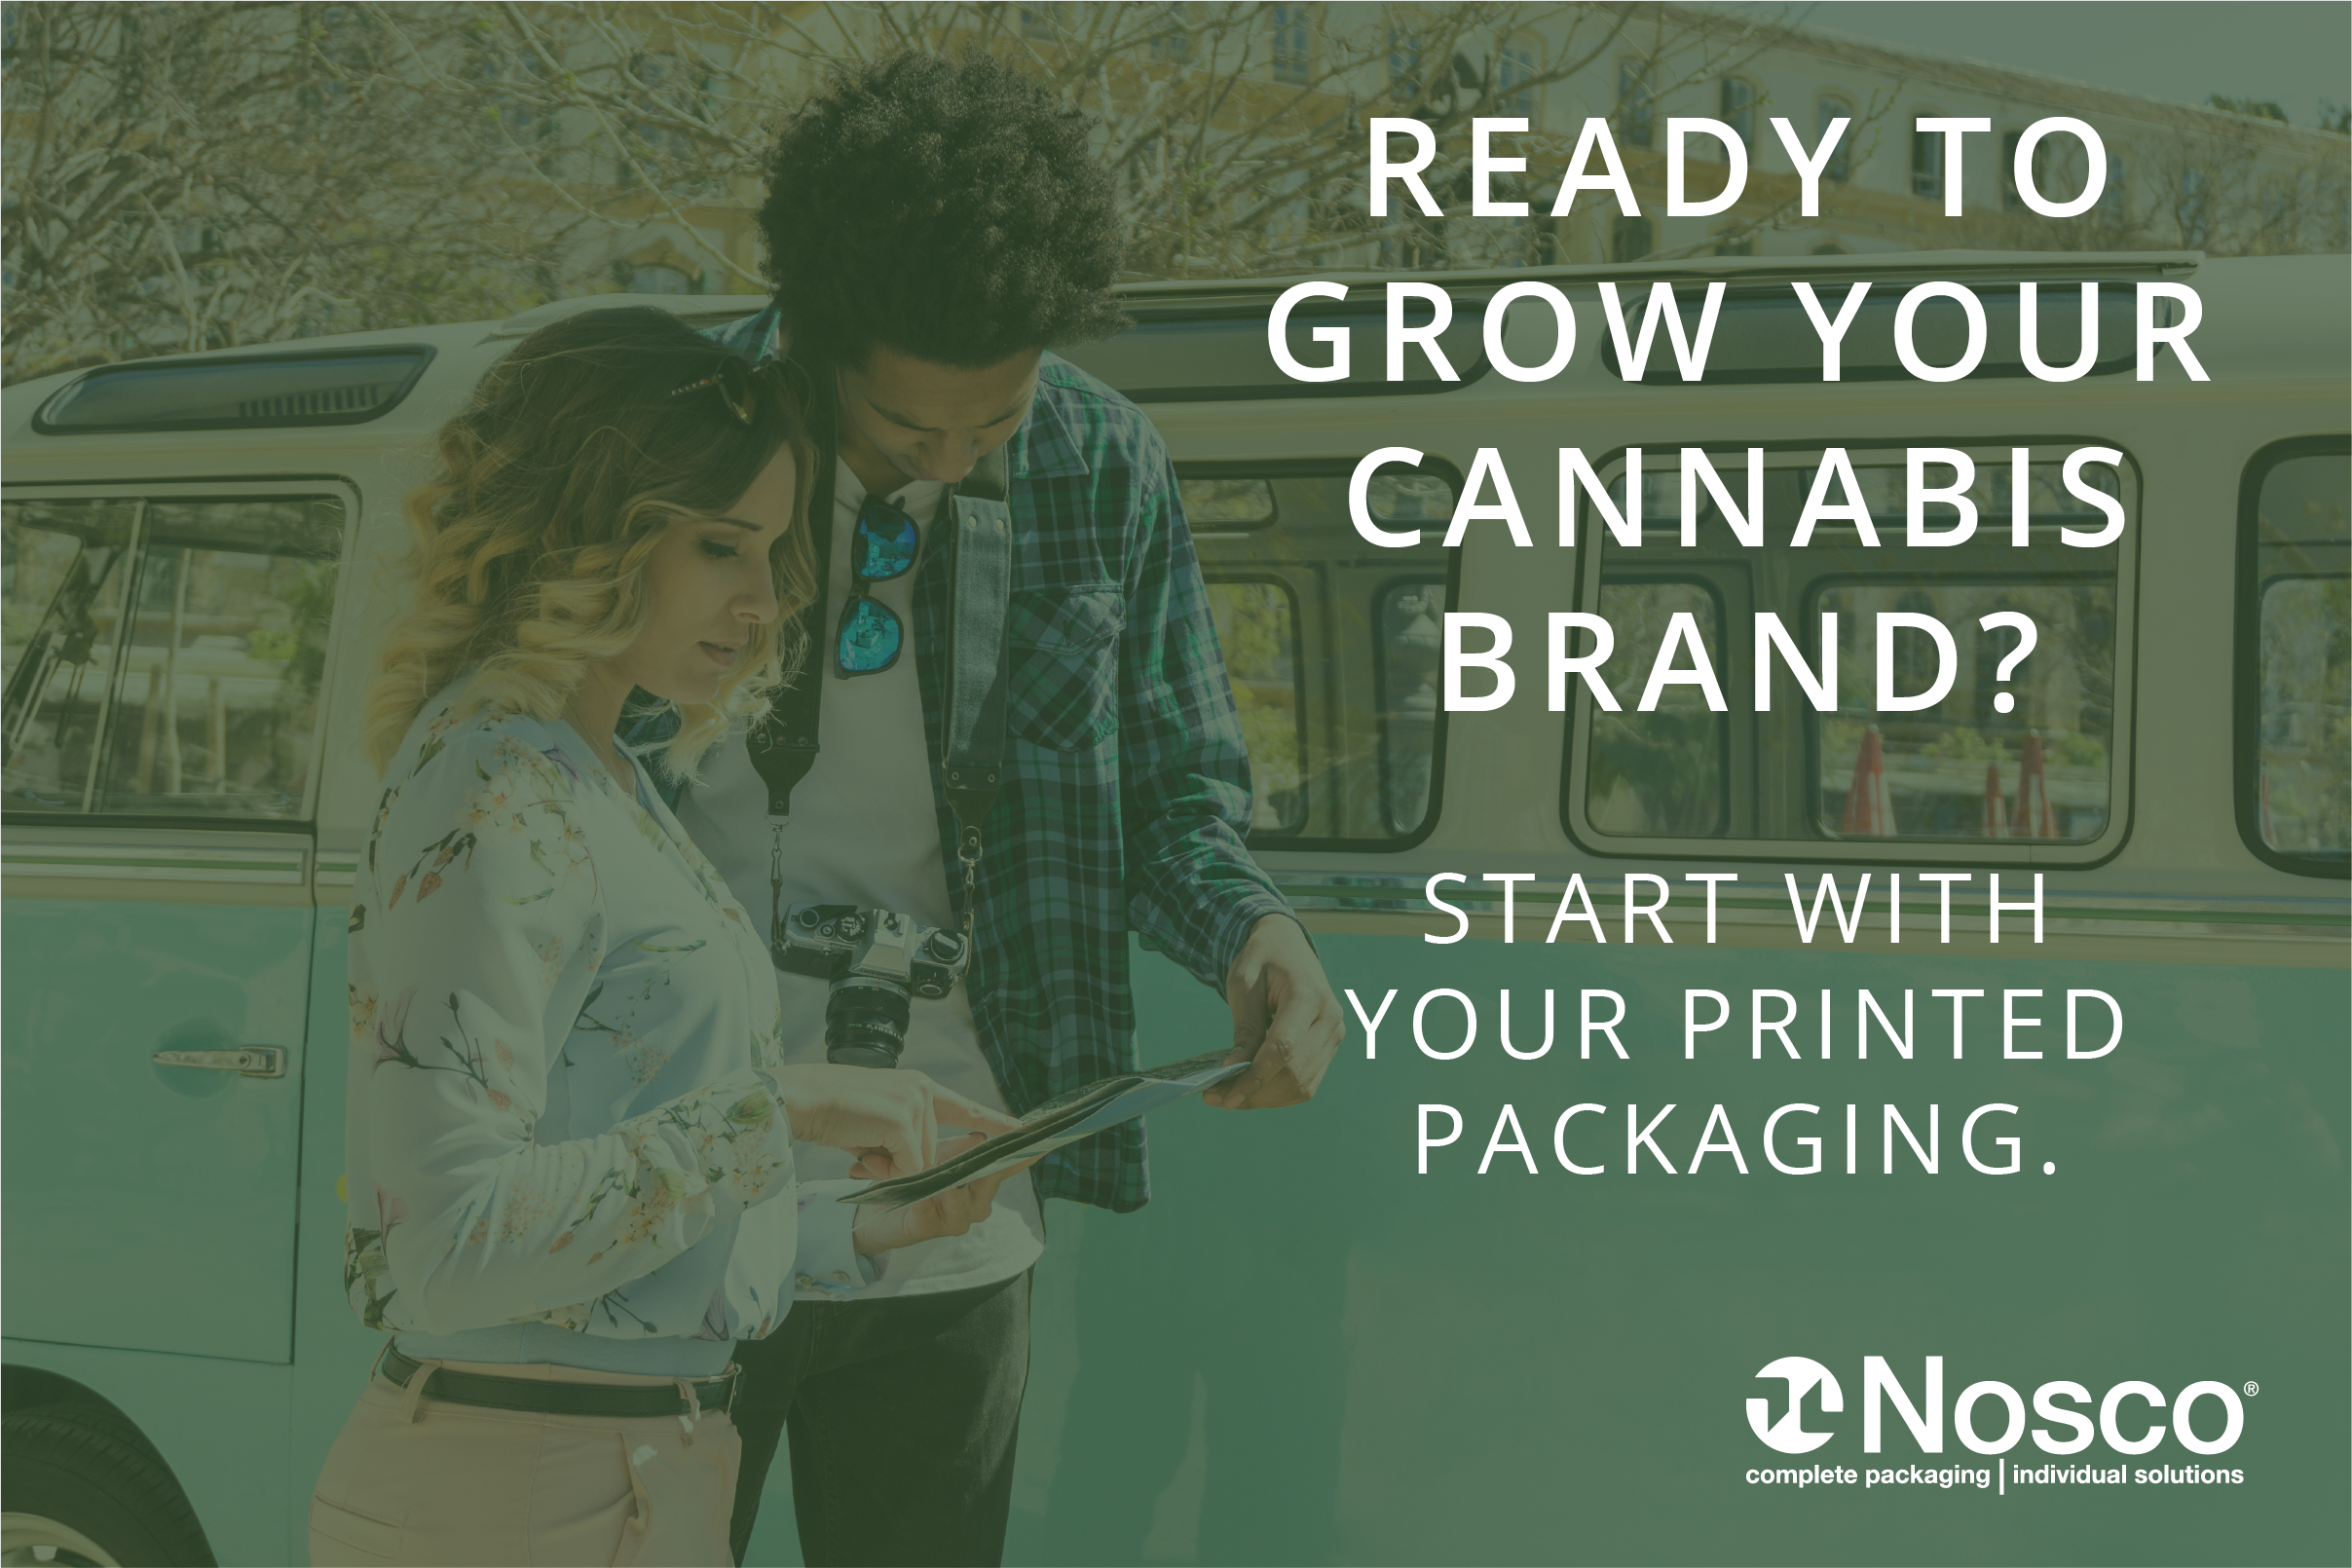 Ready to grow your cannabis brand?